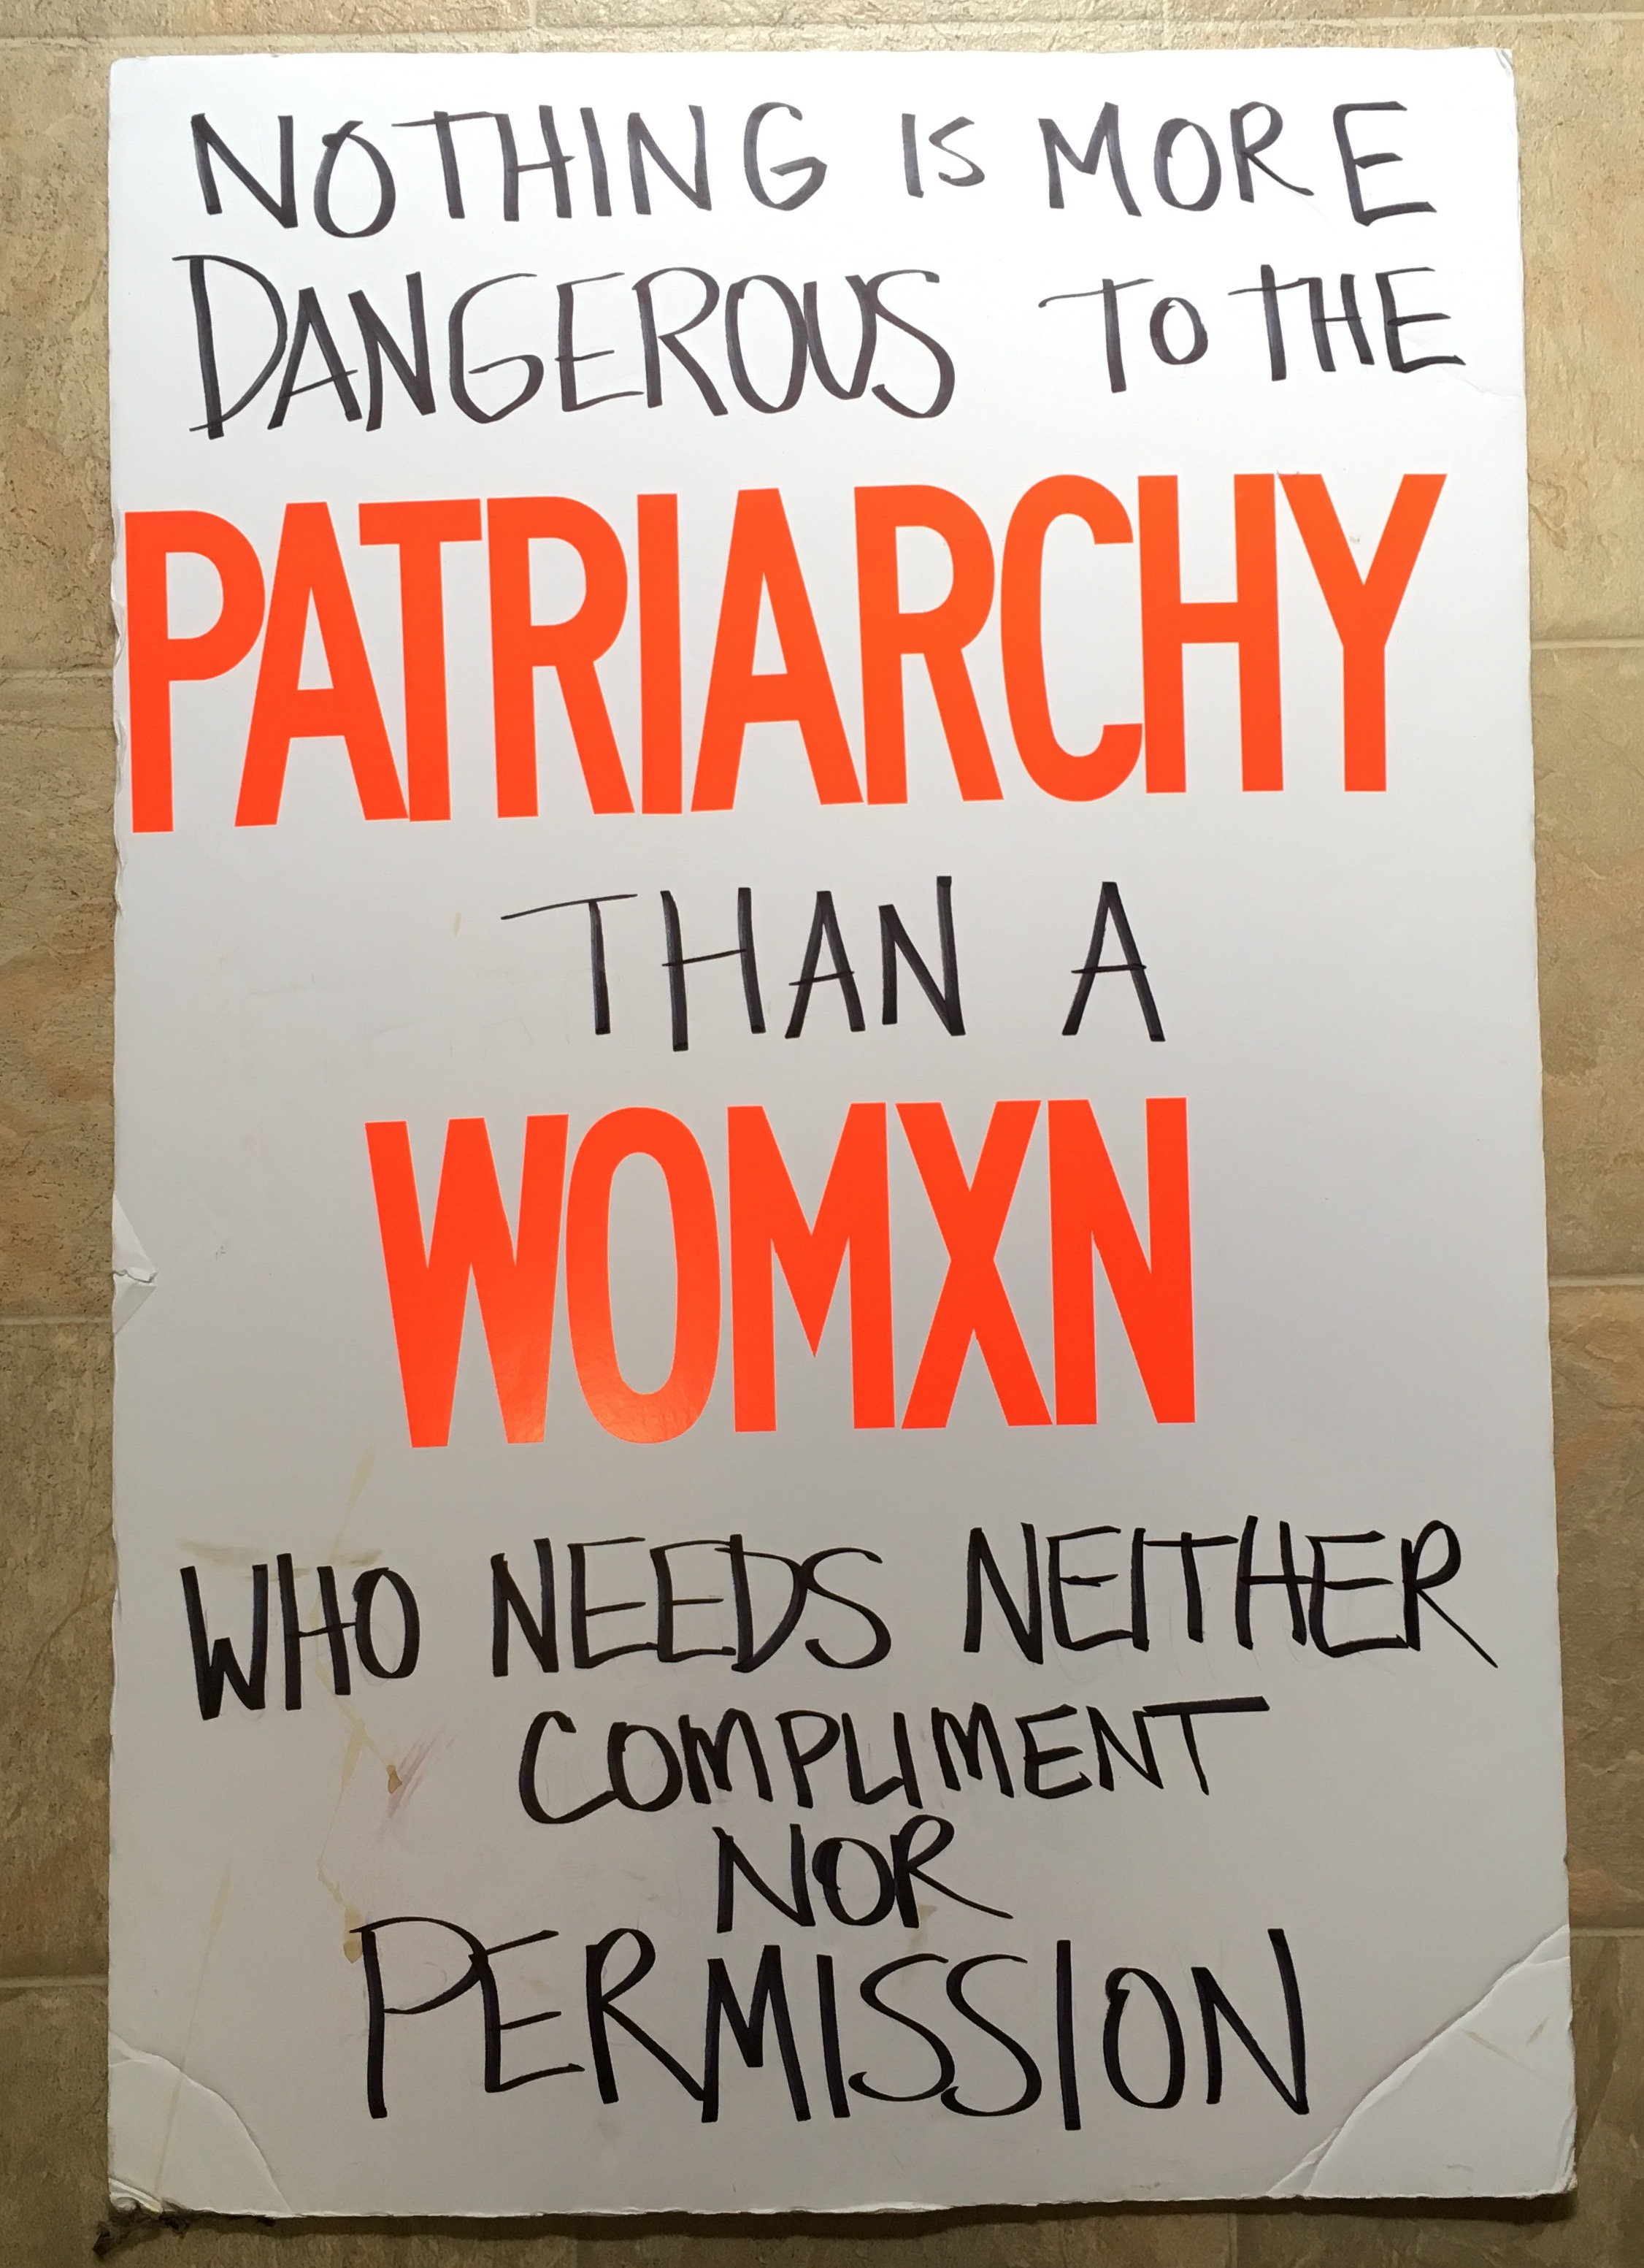 Nothing Is More Dangerous to the Patriarchy Than a Womxn Who Needs Neither Compliment nor Permission